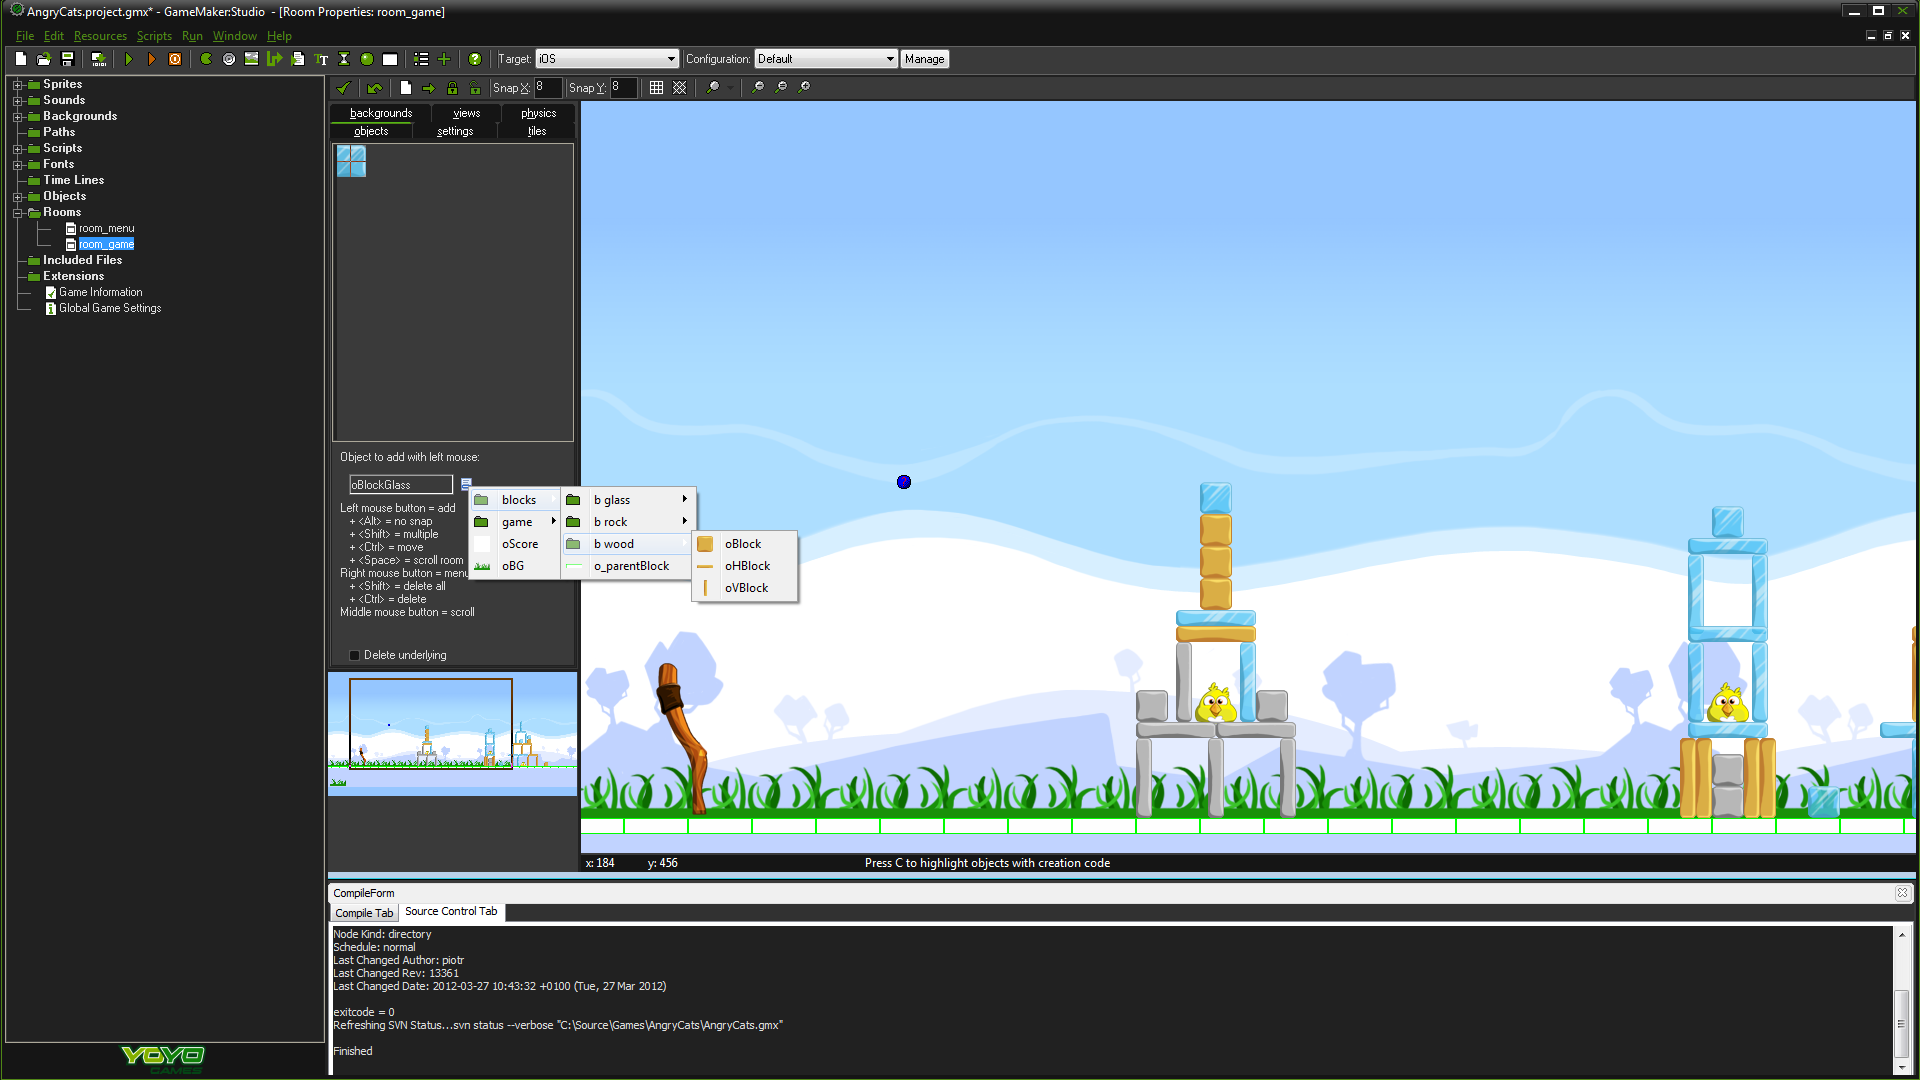 Gamemaker studio pro using a single development workflow gamemaker: studio allows you export your game directly to